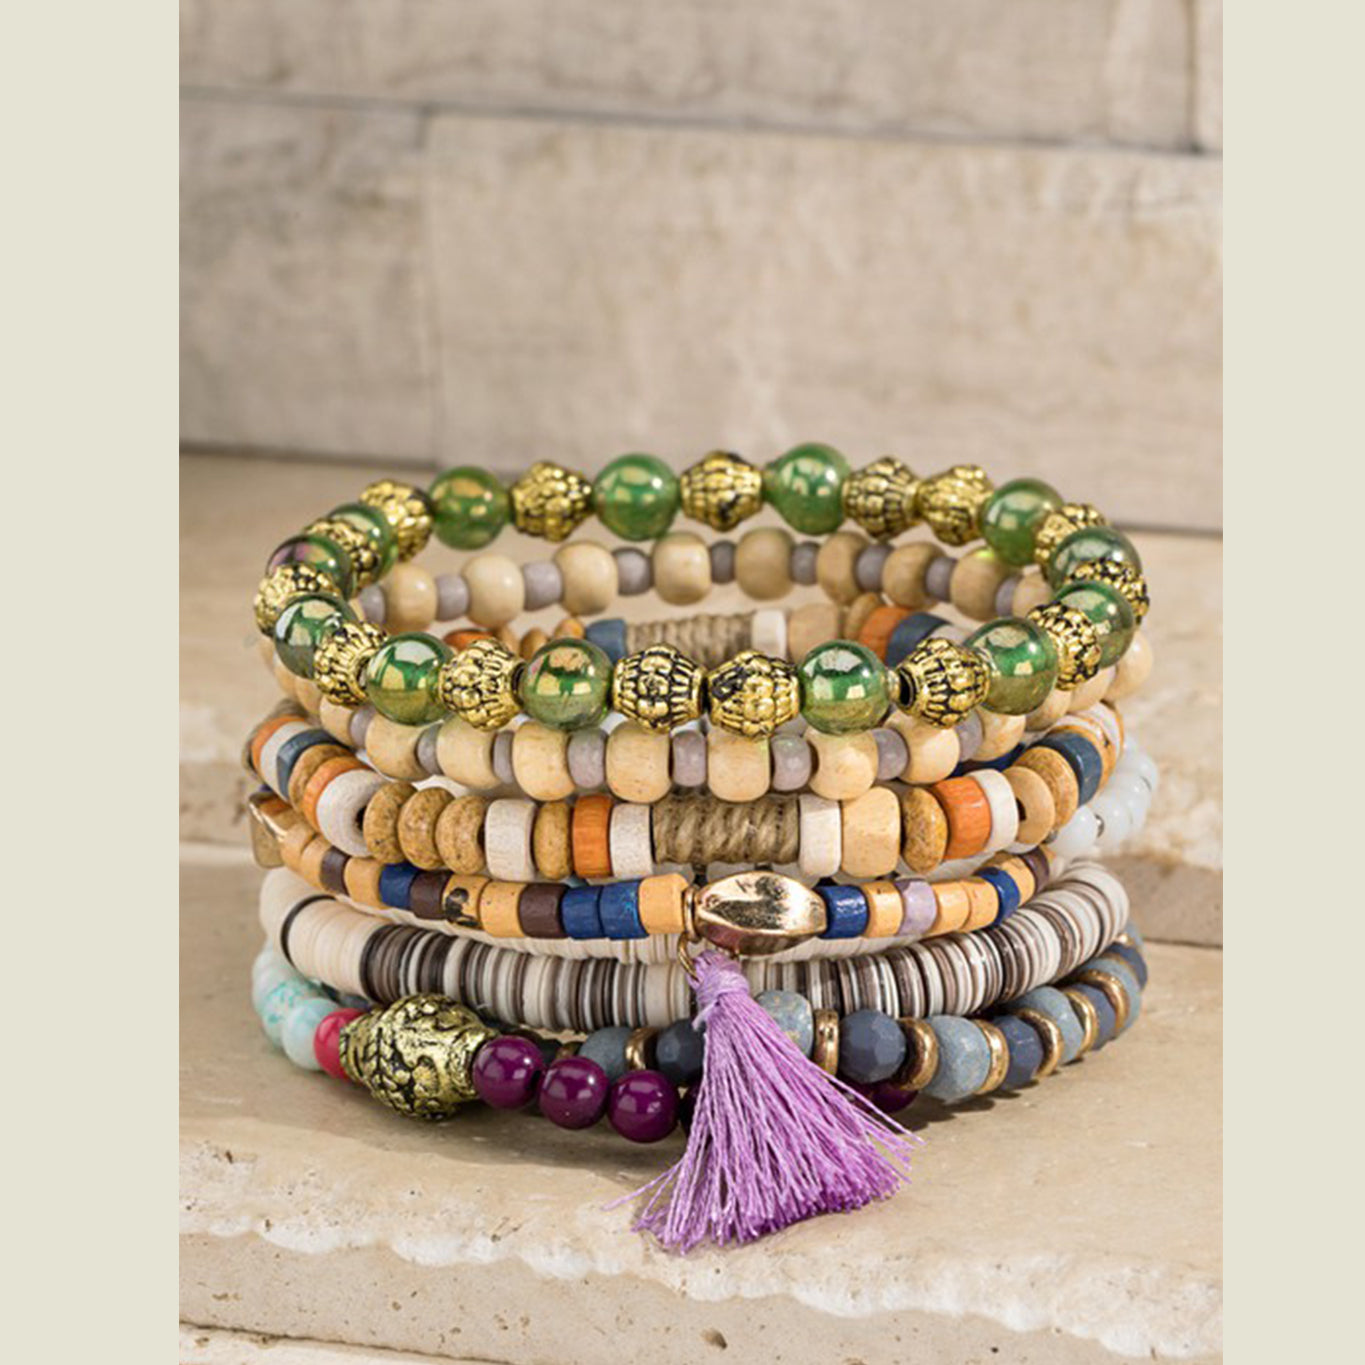 Glass & Wood Bead Stack - Blackbird General Store